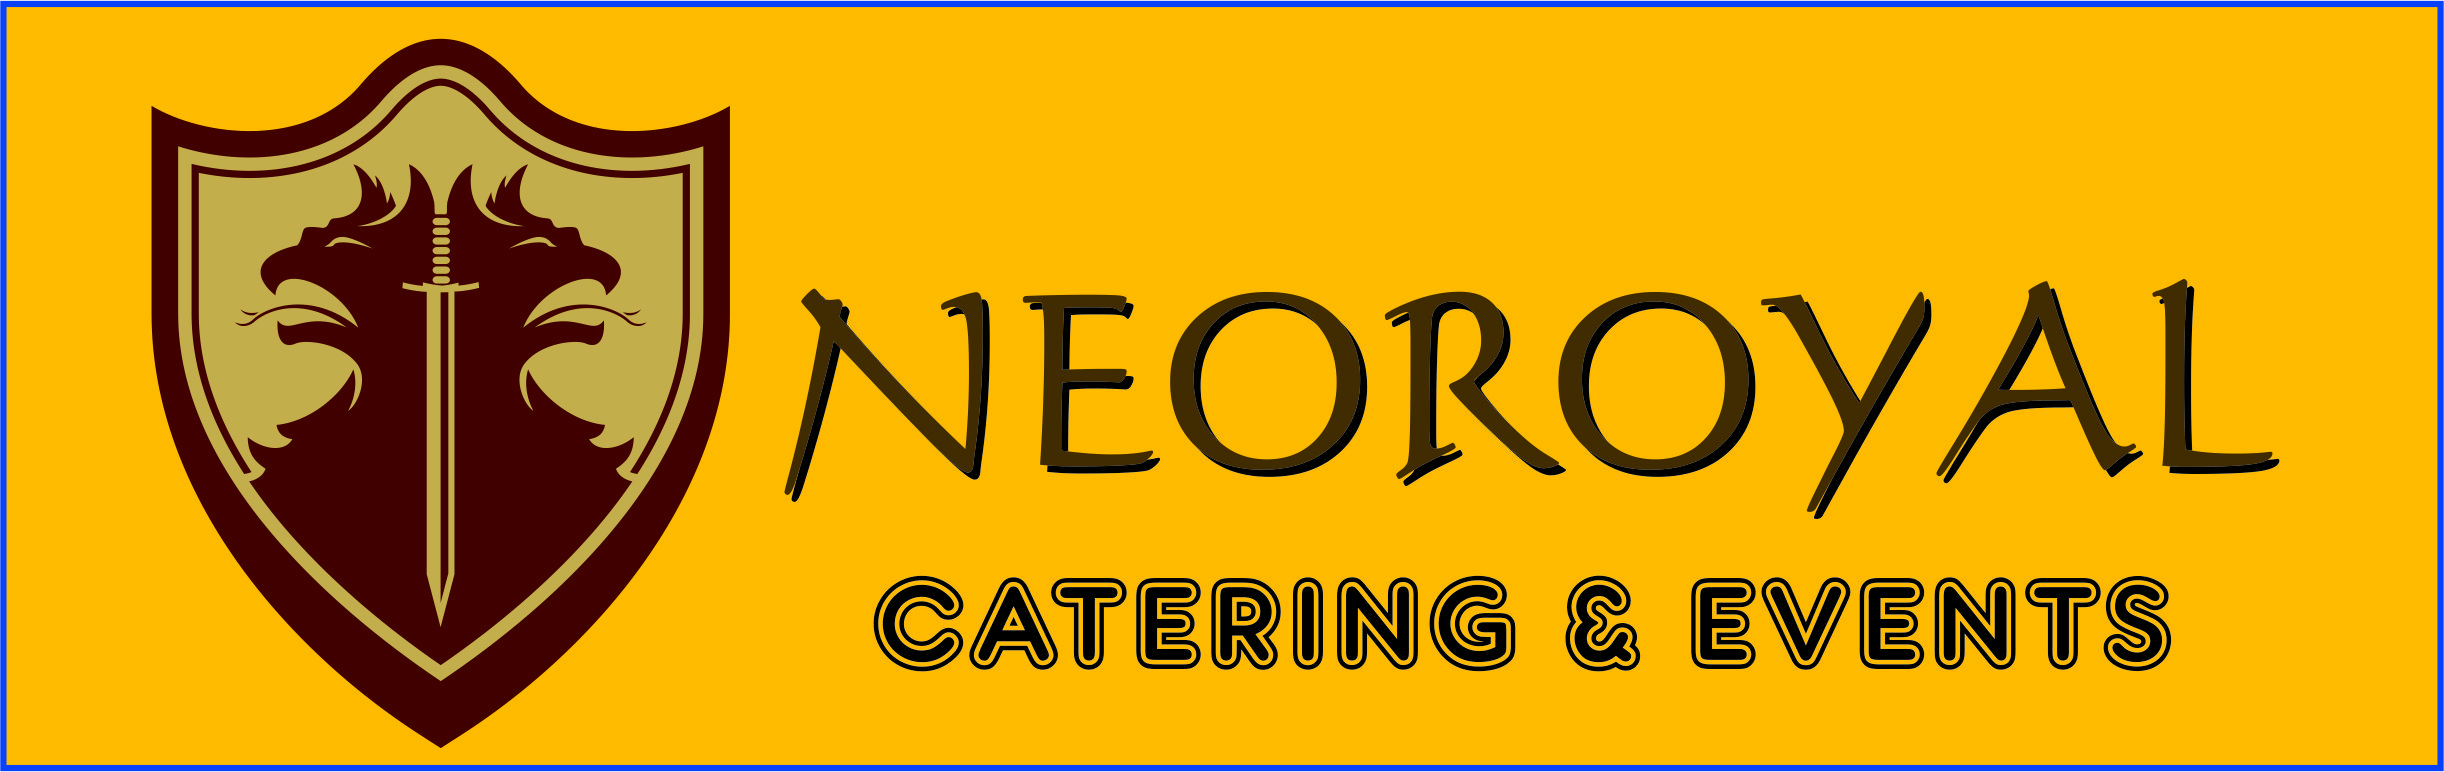 Wedding Planner/ Birthday Party Caterer Catering Services/Decoration South Delhi NCR/Best Performance Live.